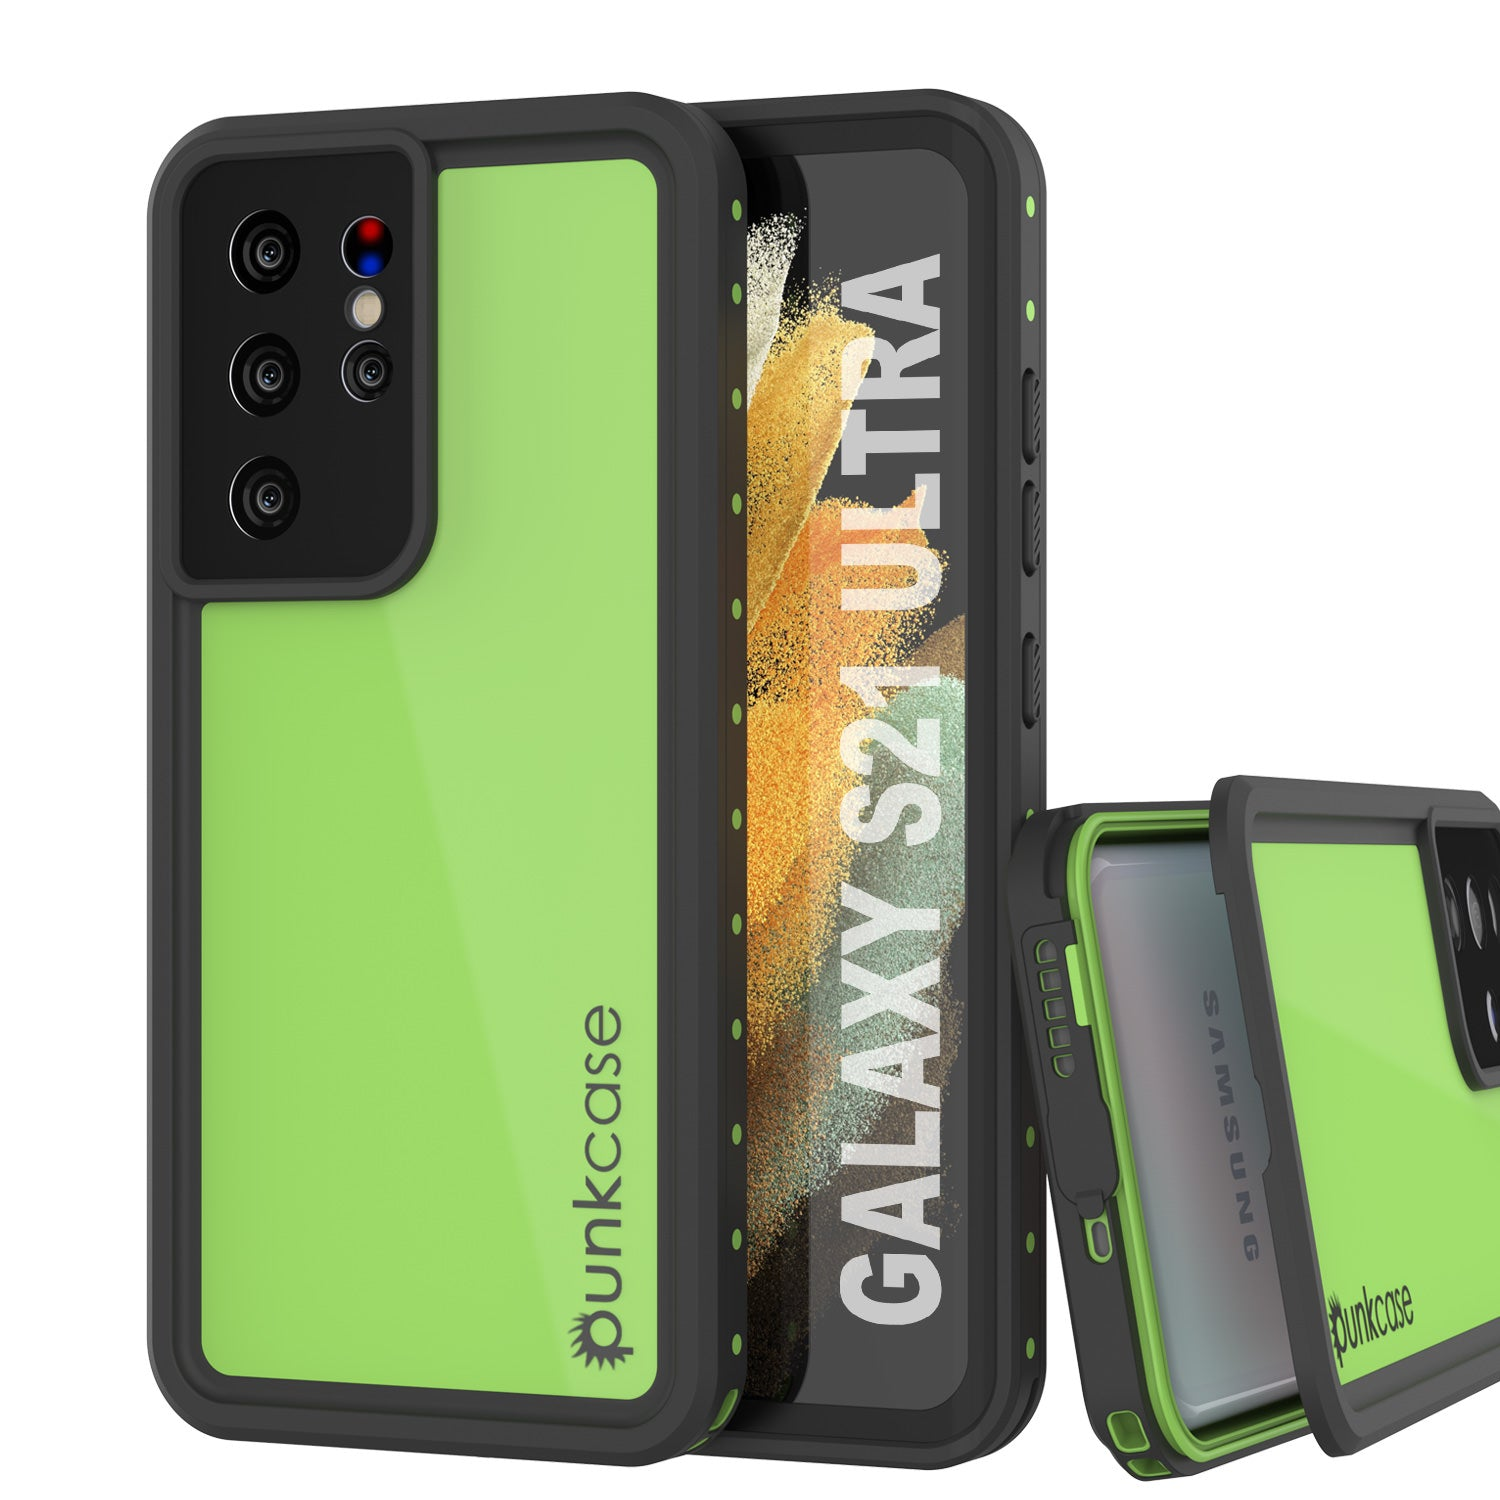 Galaxy S21 Ultra Waterproof Case PunkCase StudStar Light Green Thin 6.6ft Underwater IP68 ShockProof